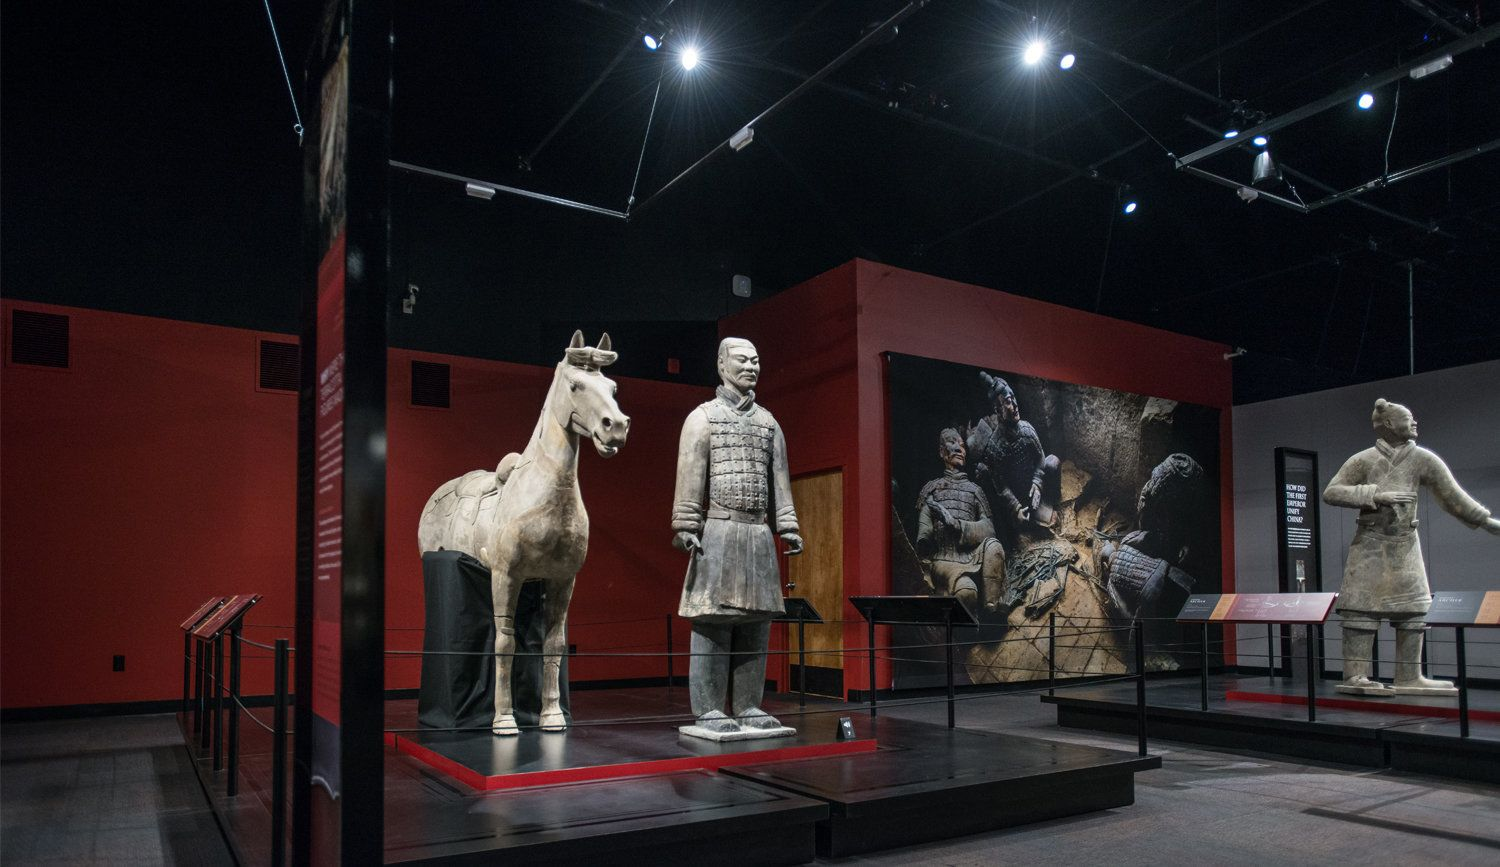 A terra-cotta horse and warrior from the Franklin Institute's